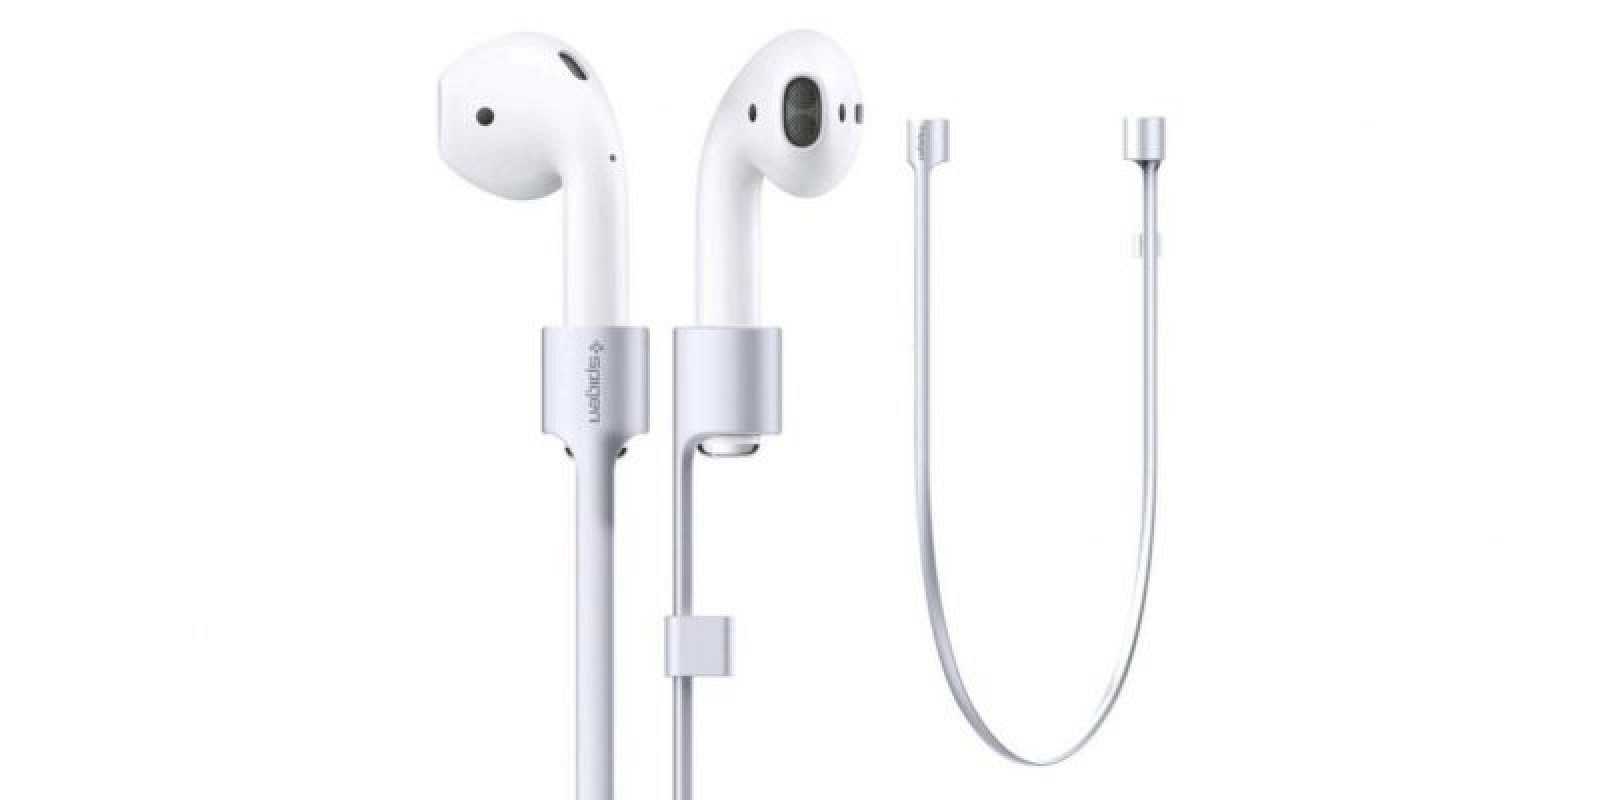 Spigen Offers Twinning Cord to Keep Apple AirPods Together